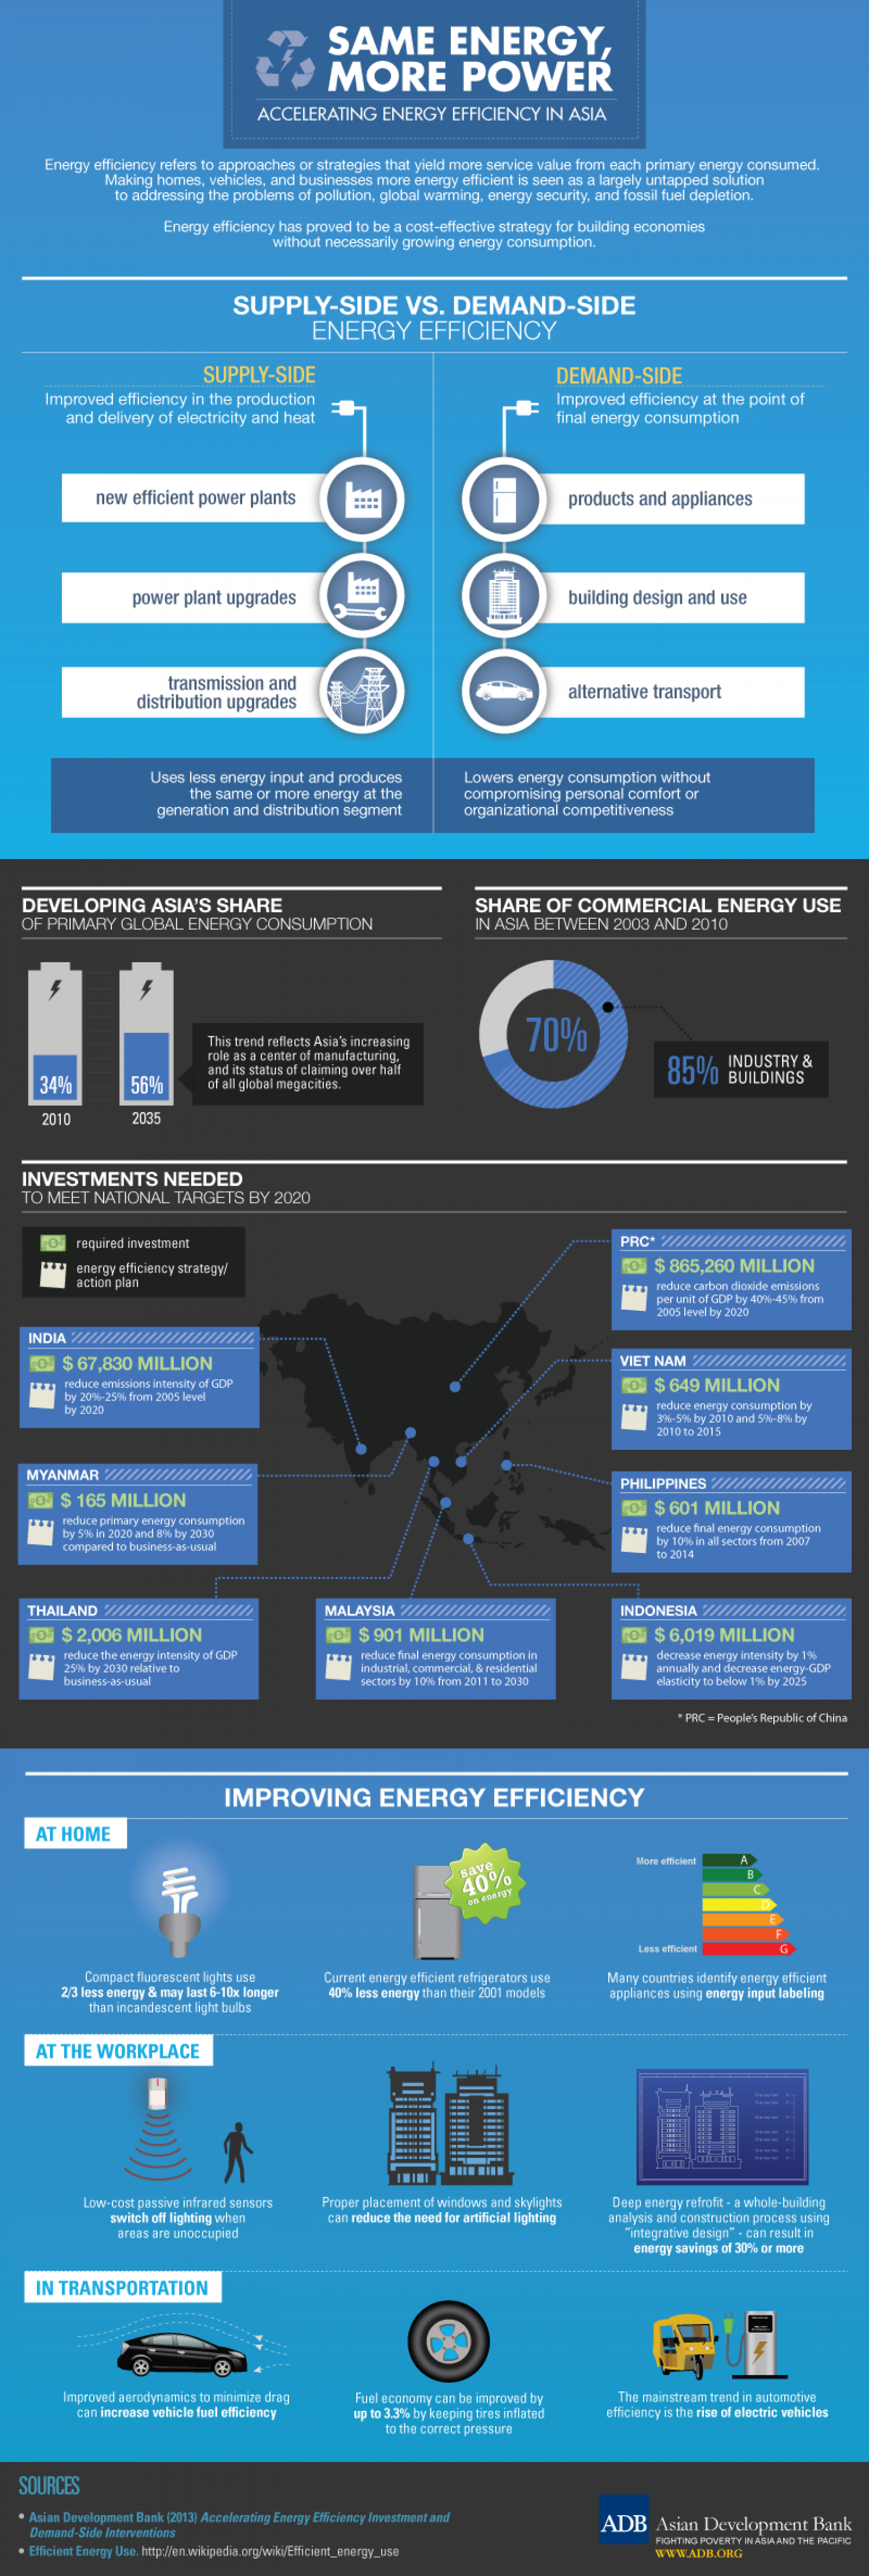 Same Energy, More Power: Accelerating Energy Efficiency in Asia Infographic